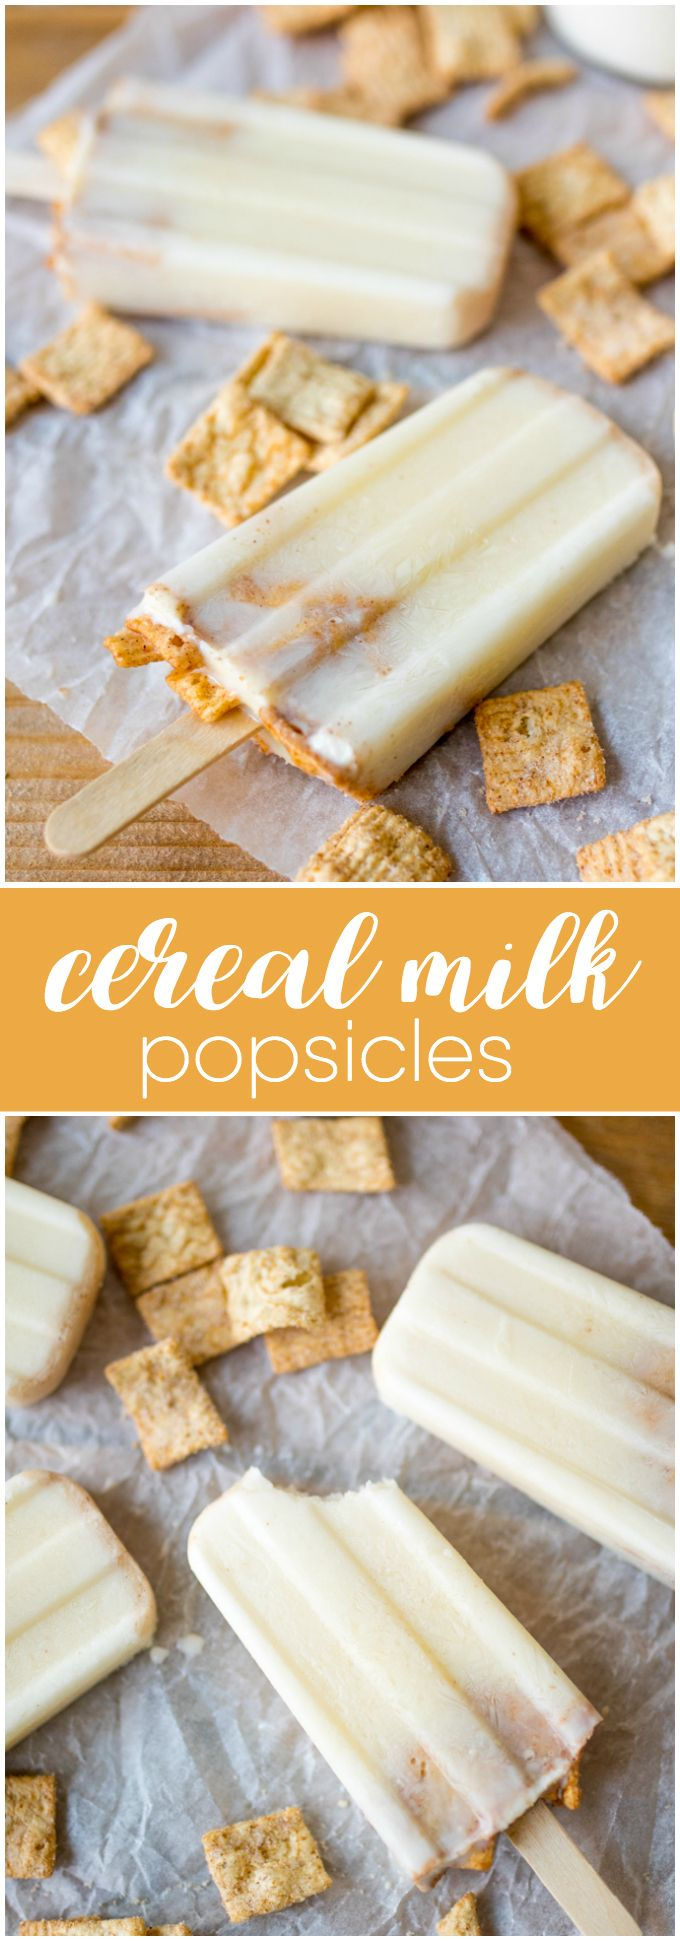 Cereal Milk Popsicles - A creamy, sweet and cold way to enjoy your fave cereal.